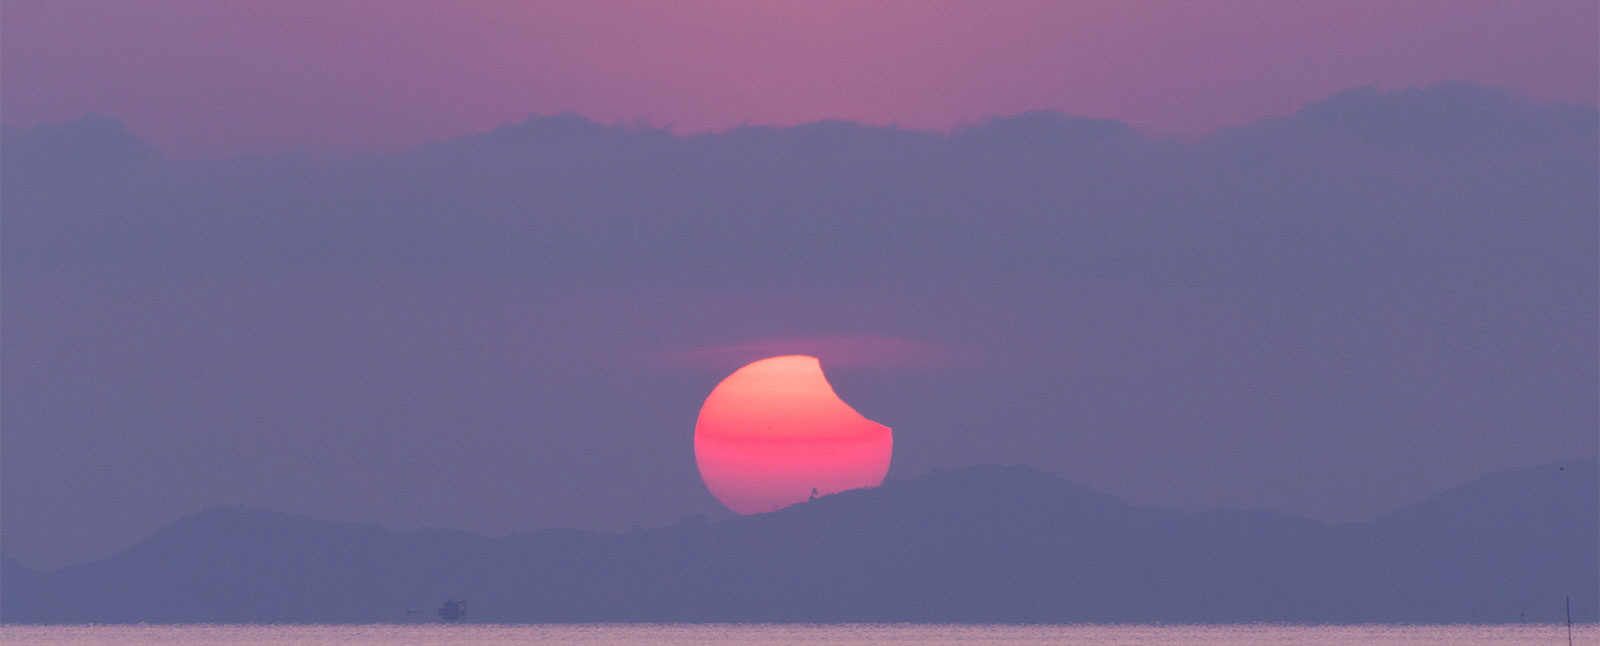 Solar Eclipse Sunrise over Mountains